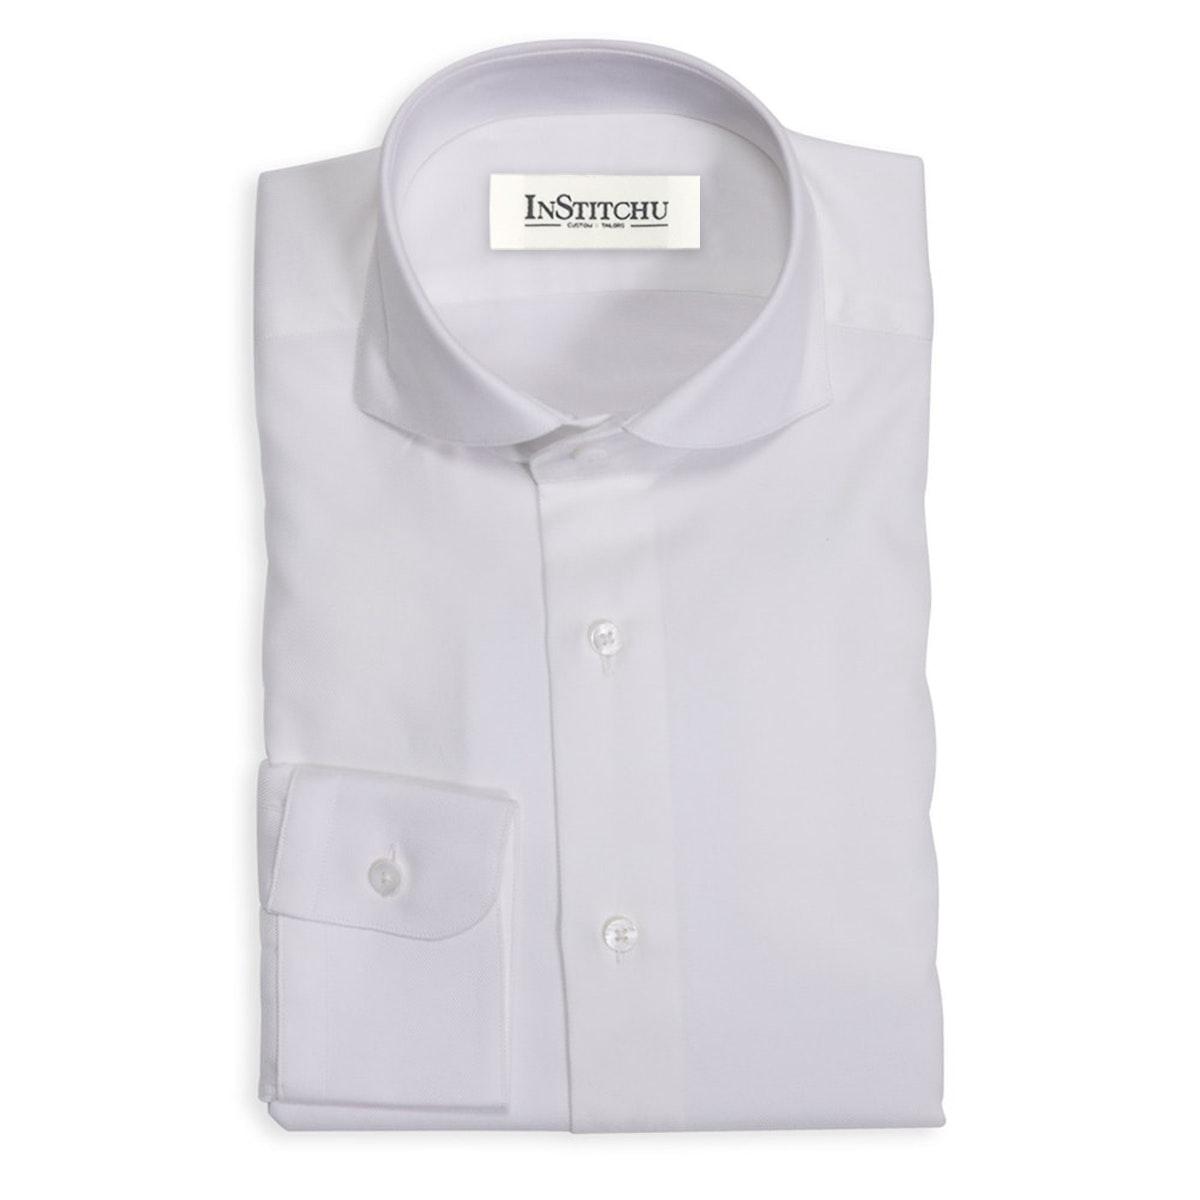 InStitchu Collection The Christies White Shirt